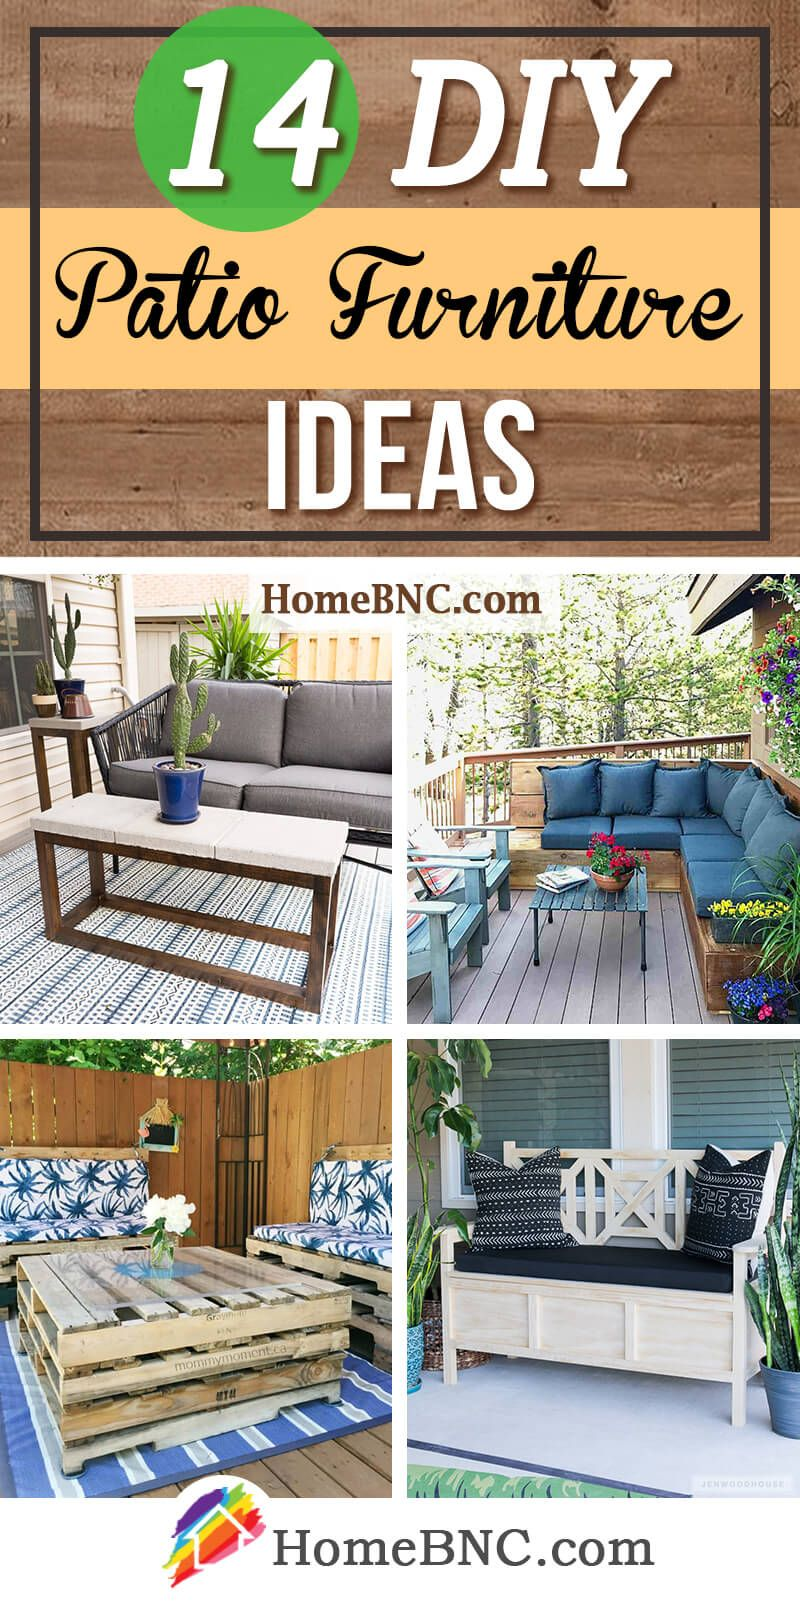 14 Budget Friendly Diy Patio Furniture Ideas To Enhance Your Summer Diy Patio Furniture Diy Patio Summer Patio Decor